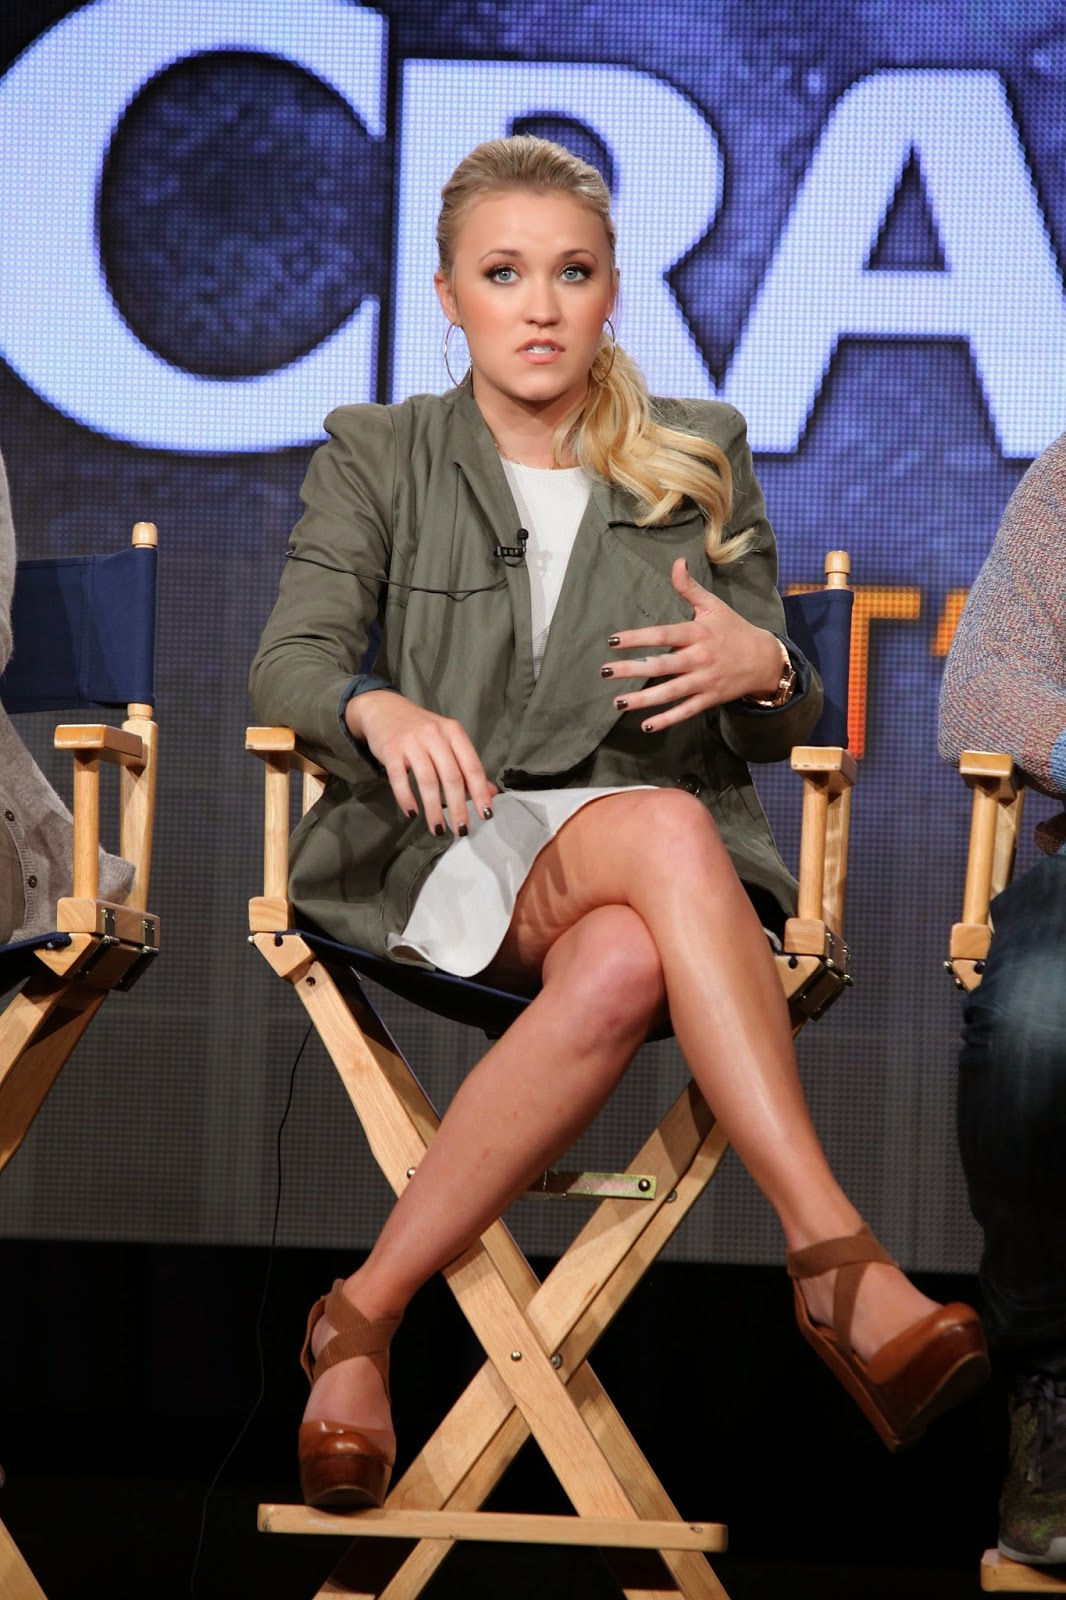 Asses Emily osment upskirt picture moans make